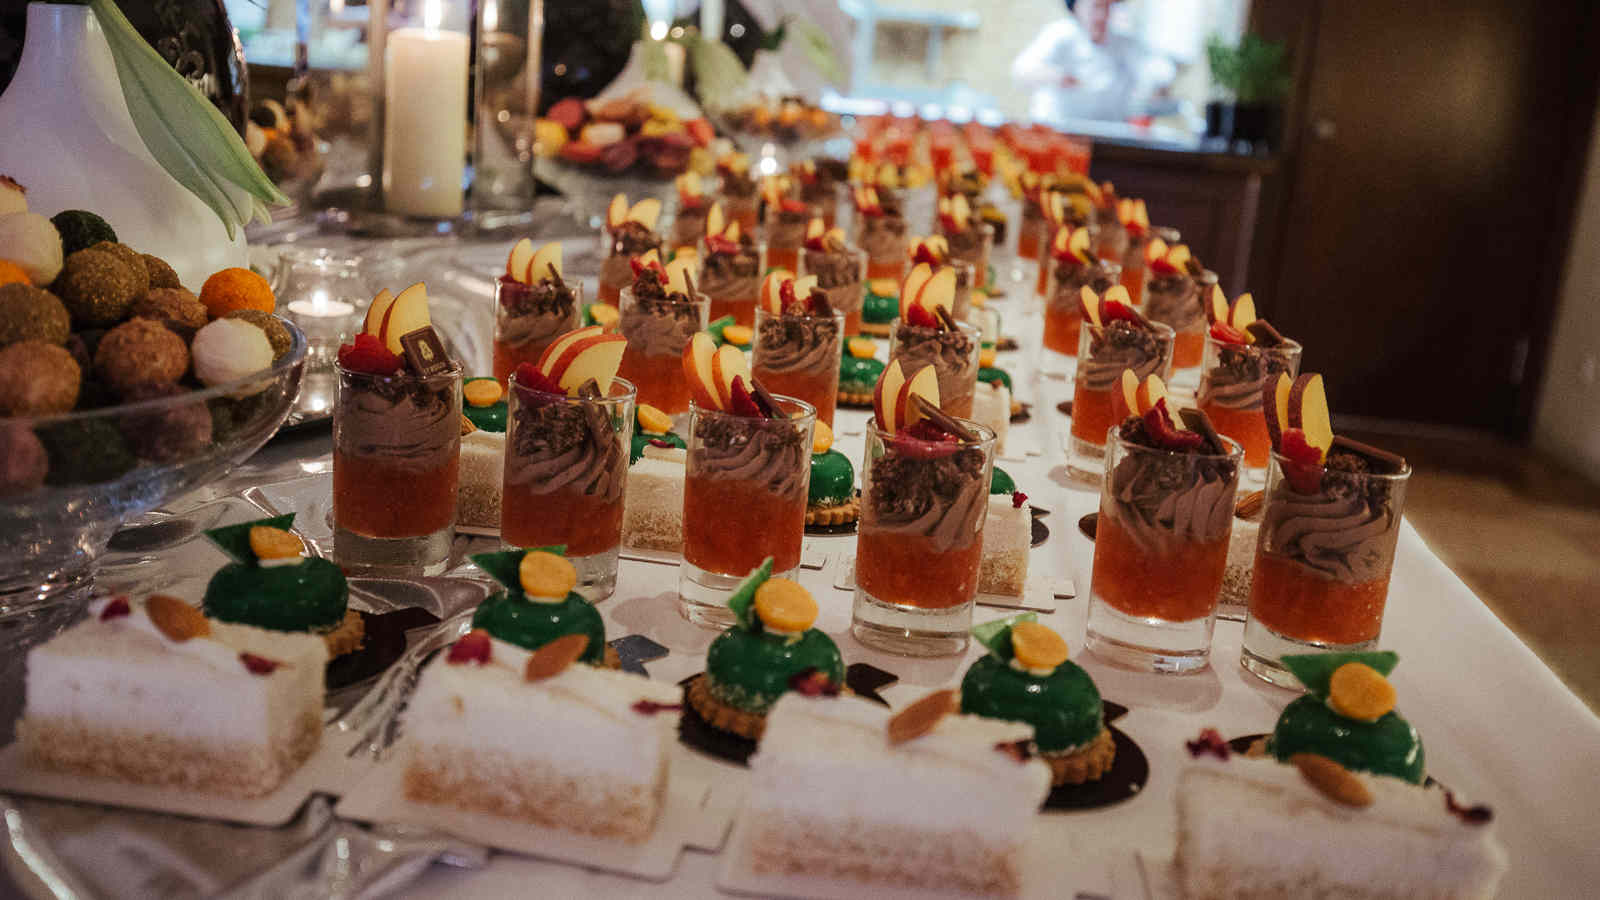 Dessert buffet prepared by Sabrina Schanz from Ritz Carlton Berlin